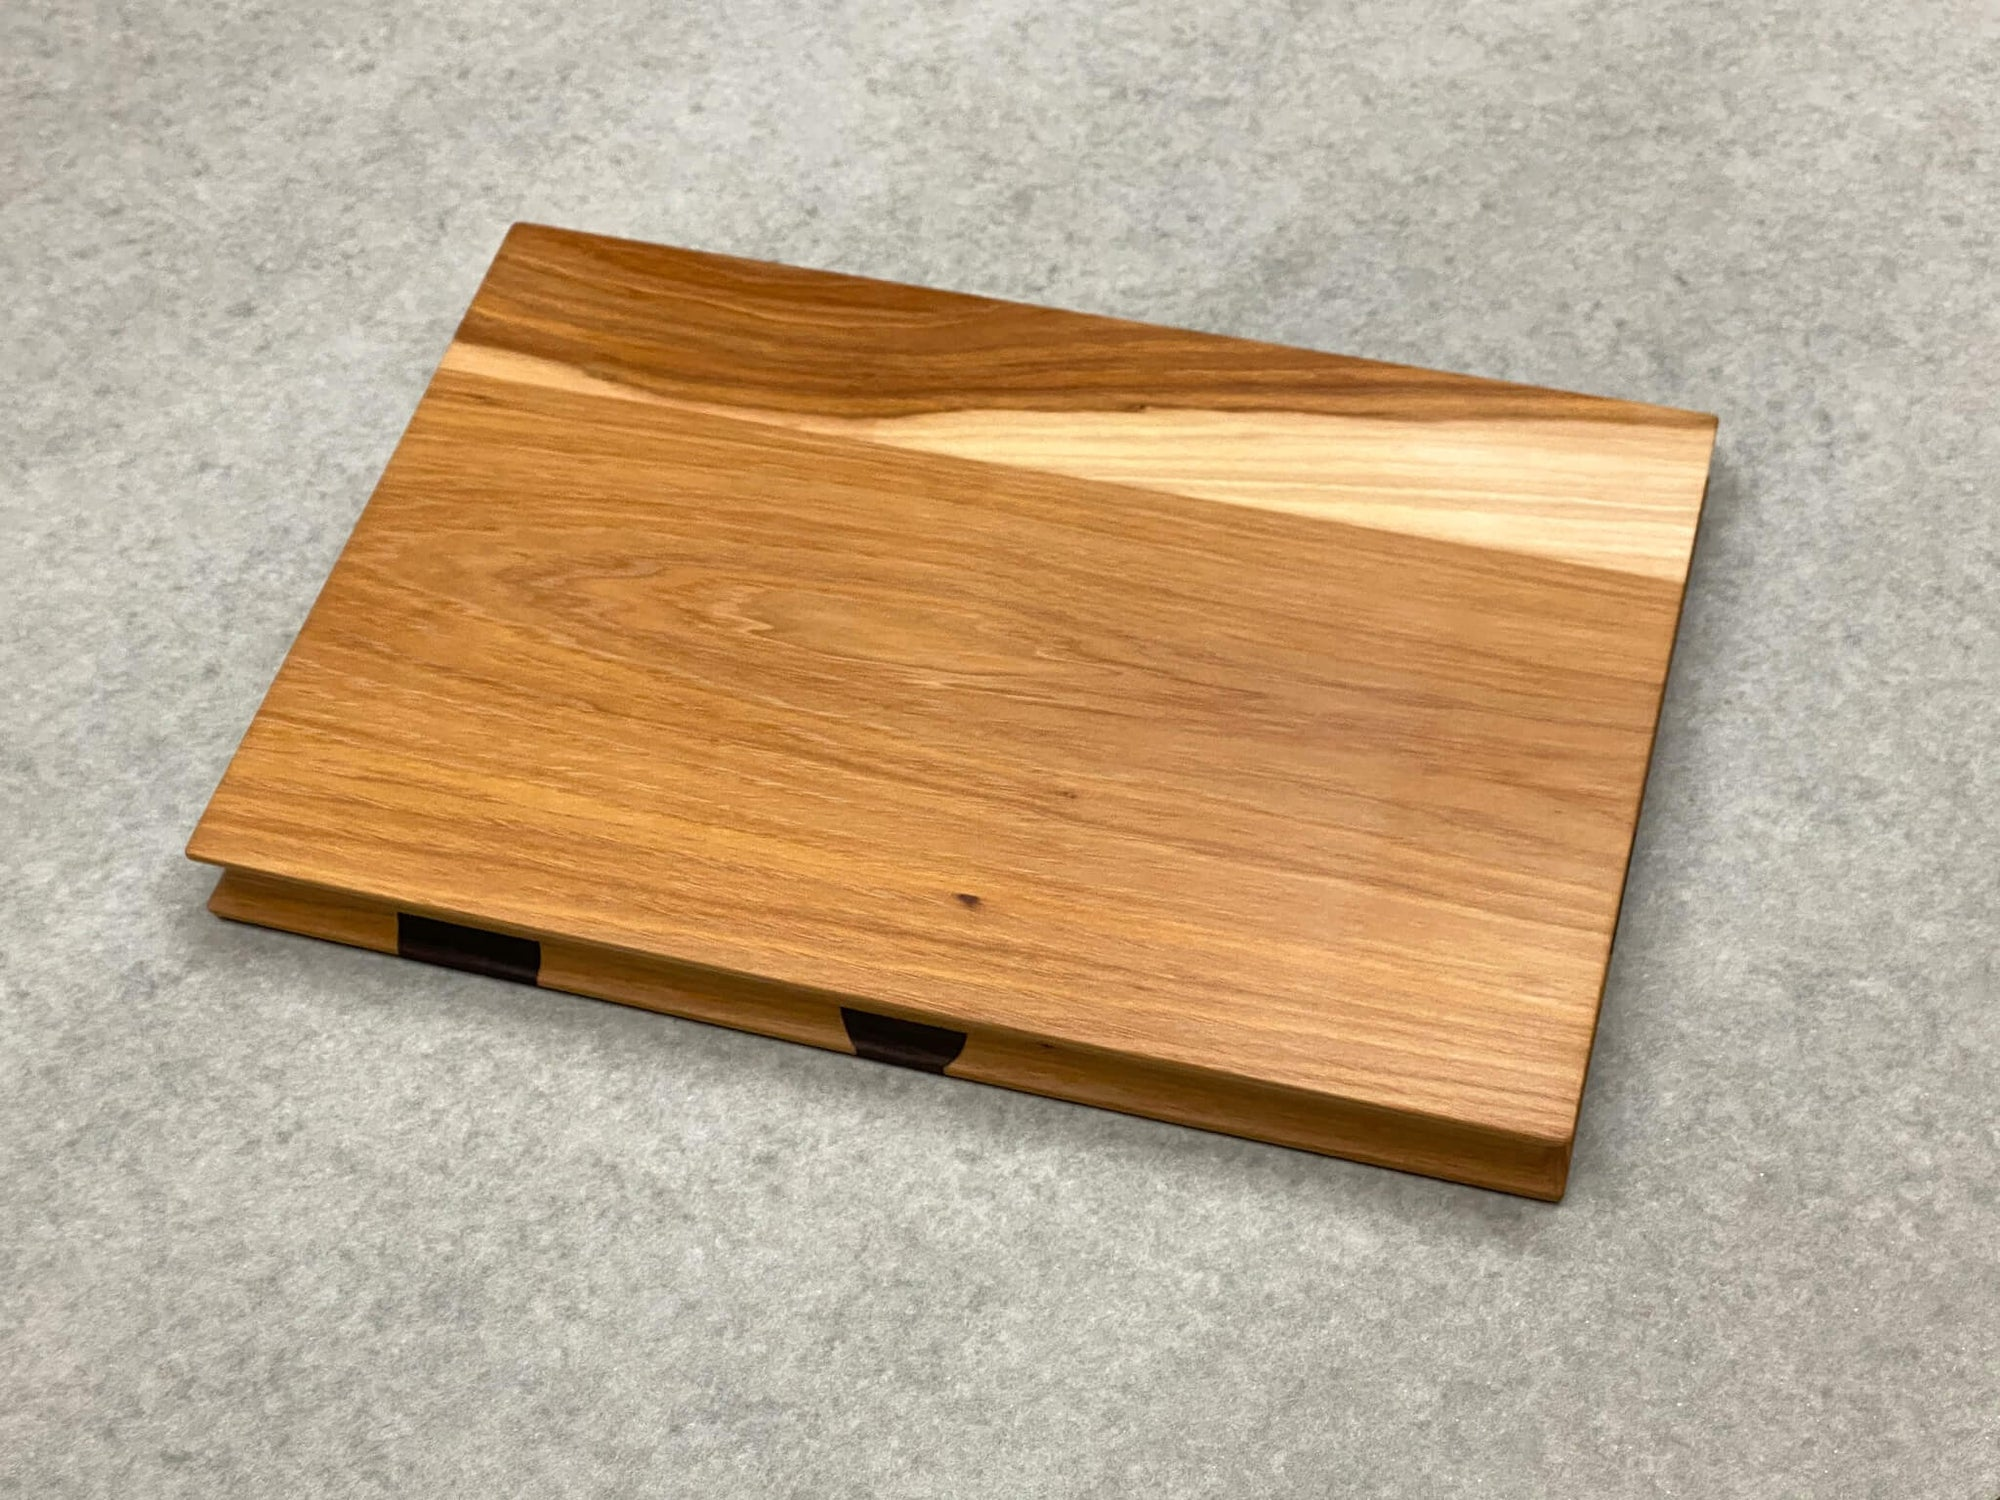 Doubles Rectangle Board with Polka Dots in Hickory and Walnut